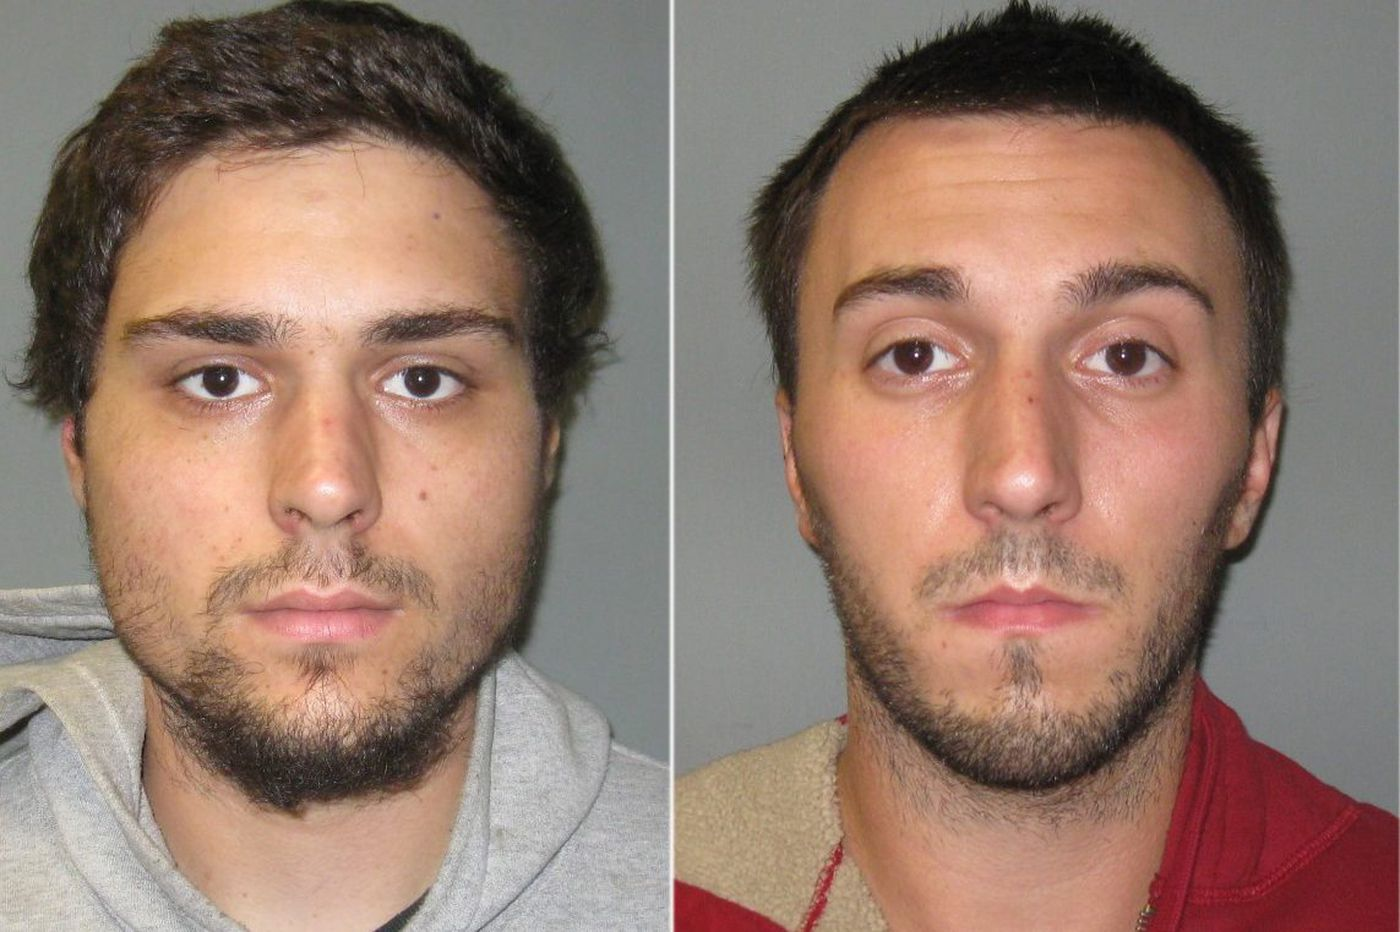 Two brothers now convicted in fatal beating with a bat and backyard burial